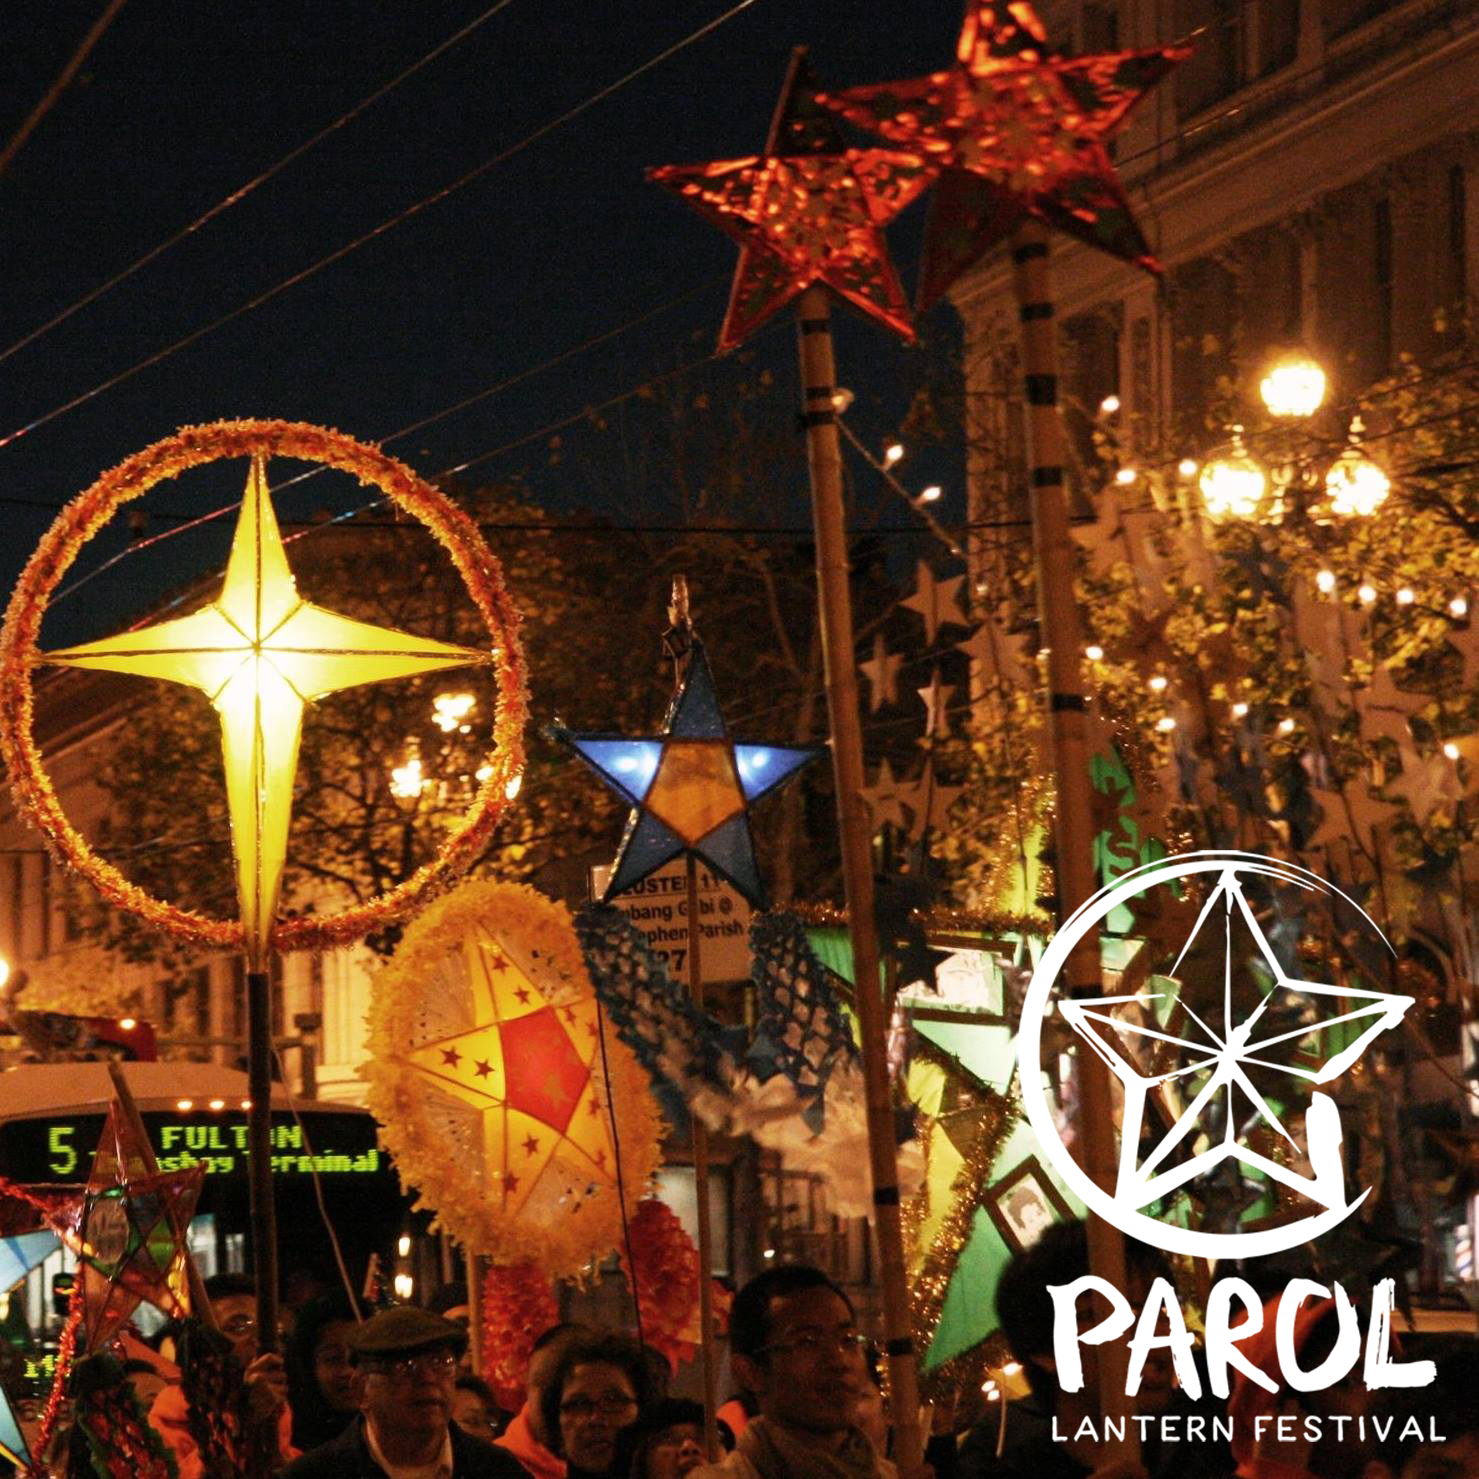 Parol Lantern Festival - Each year, the SoMa community showcases the parol lantern - the quintessential Filipino symbol of hope, blessings, luck, peace, and light during the holiday season - and brightens the Jessie Square, Yerba Buena Lane and Mission Street between 3rd and 4th Streets.